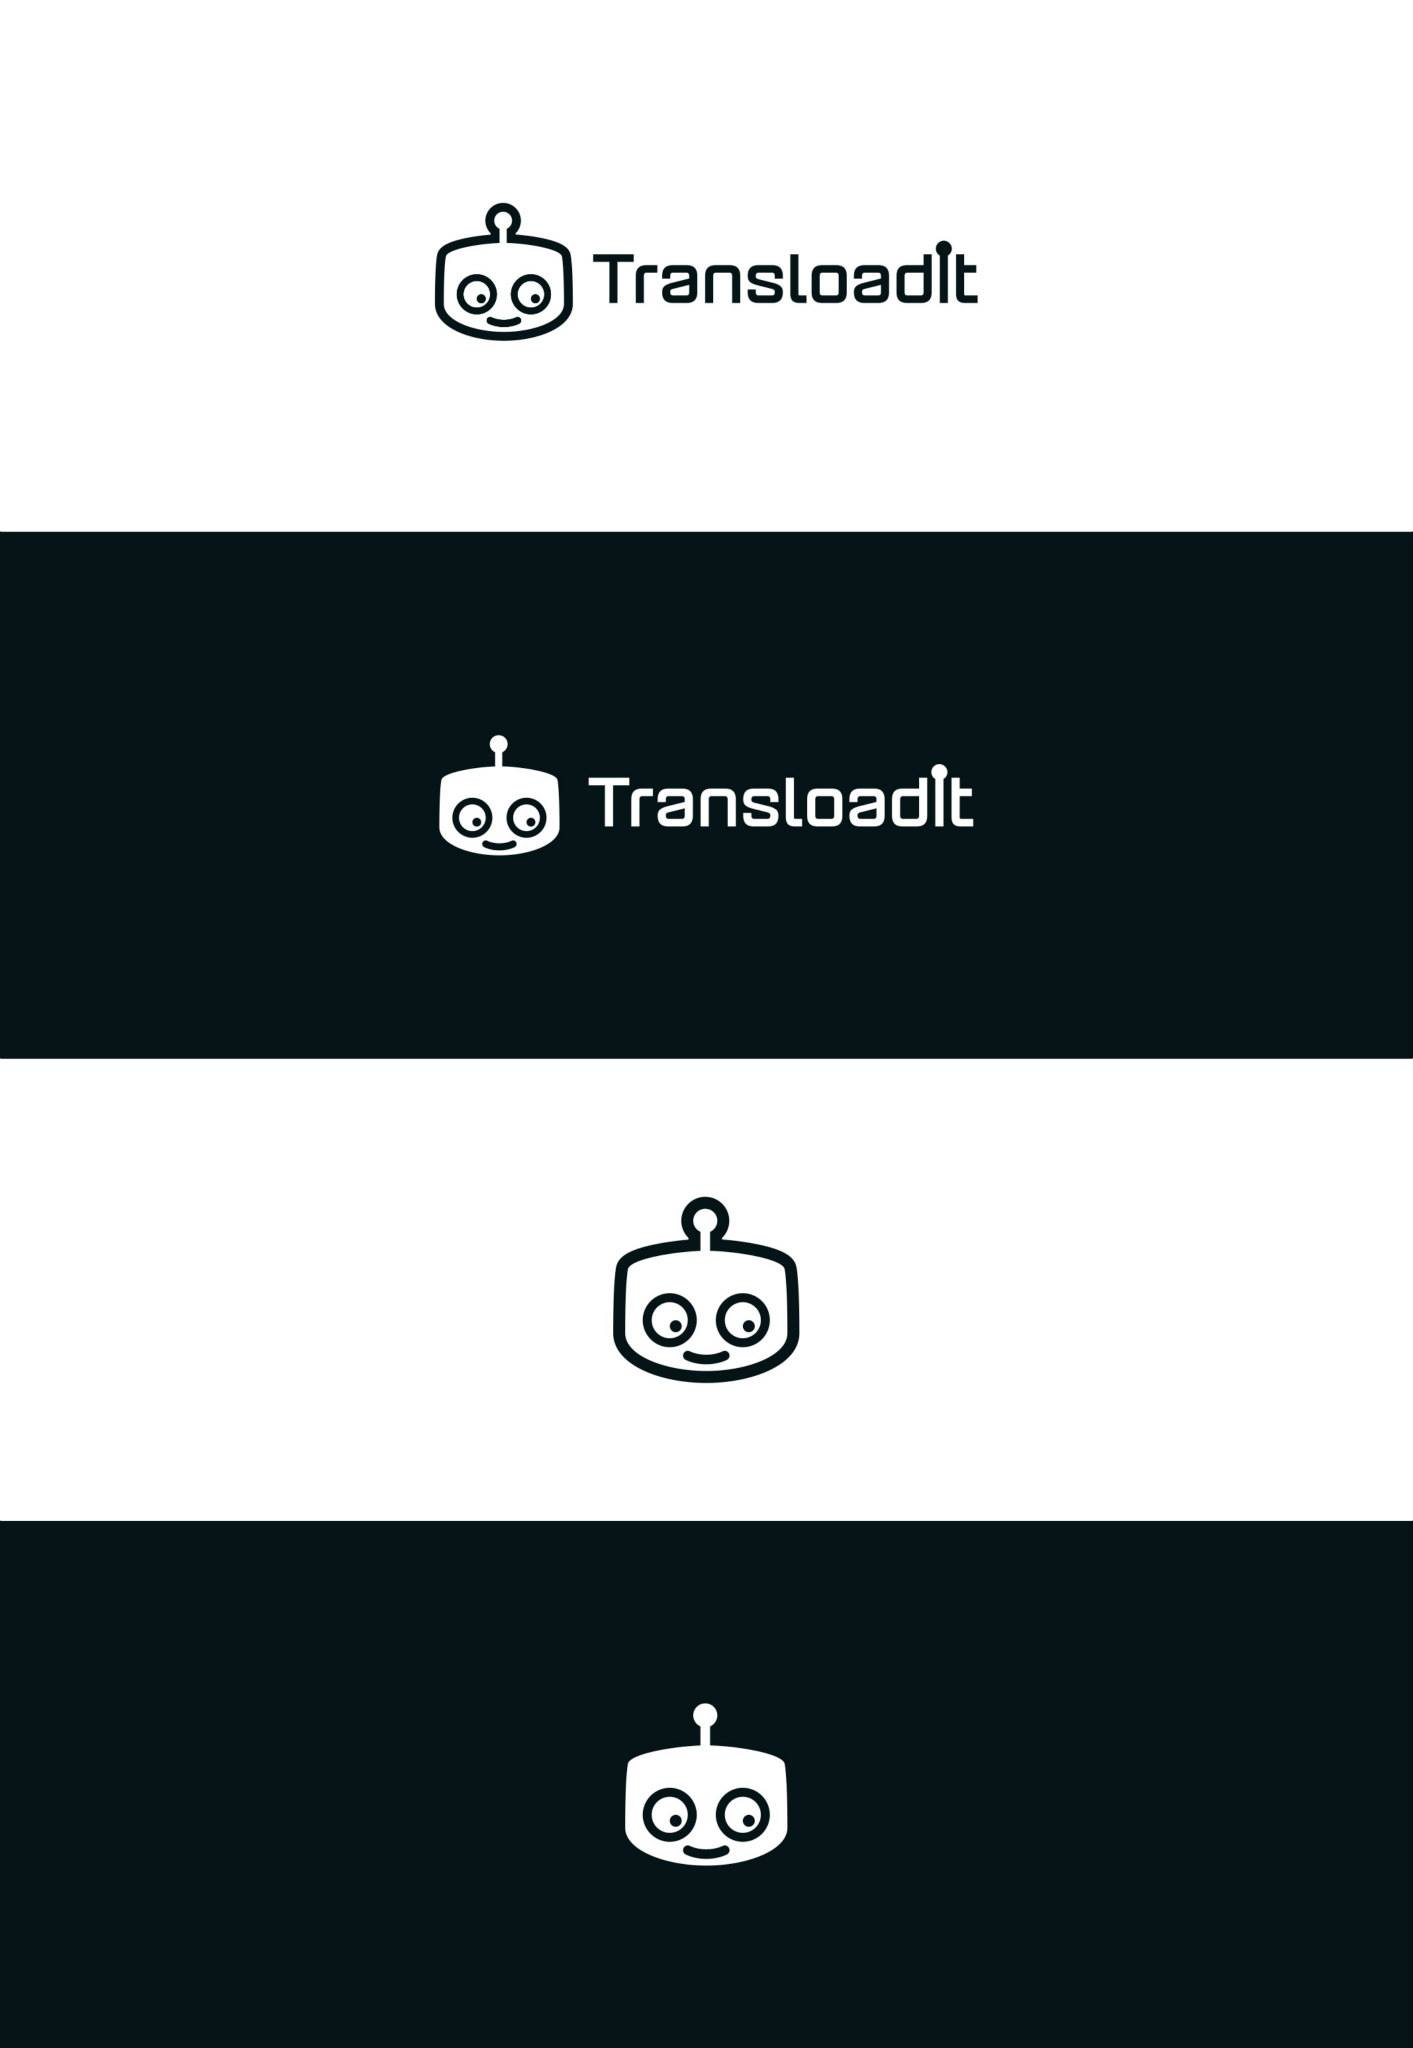 Transloadit's logos as of 2015